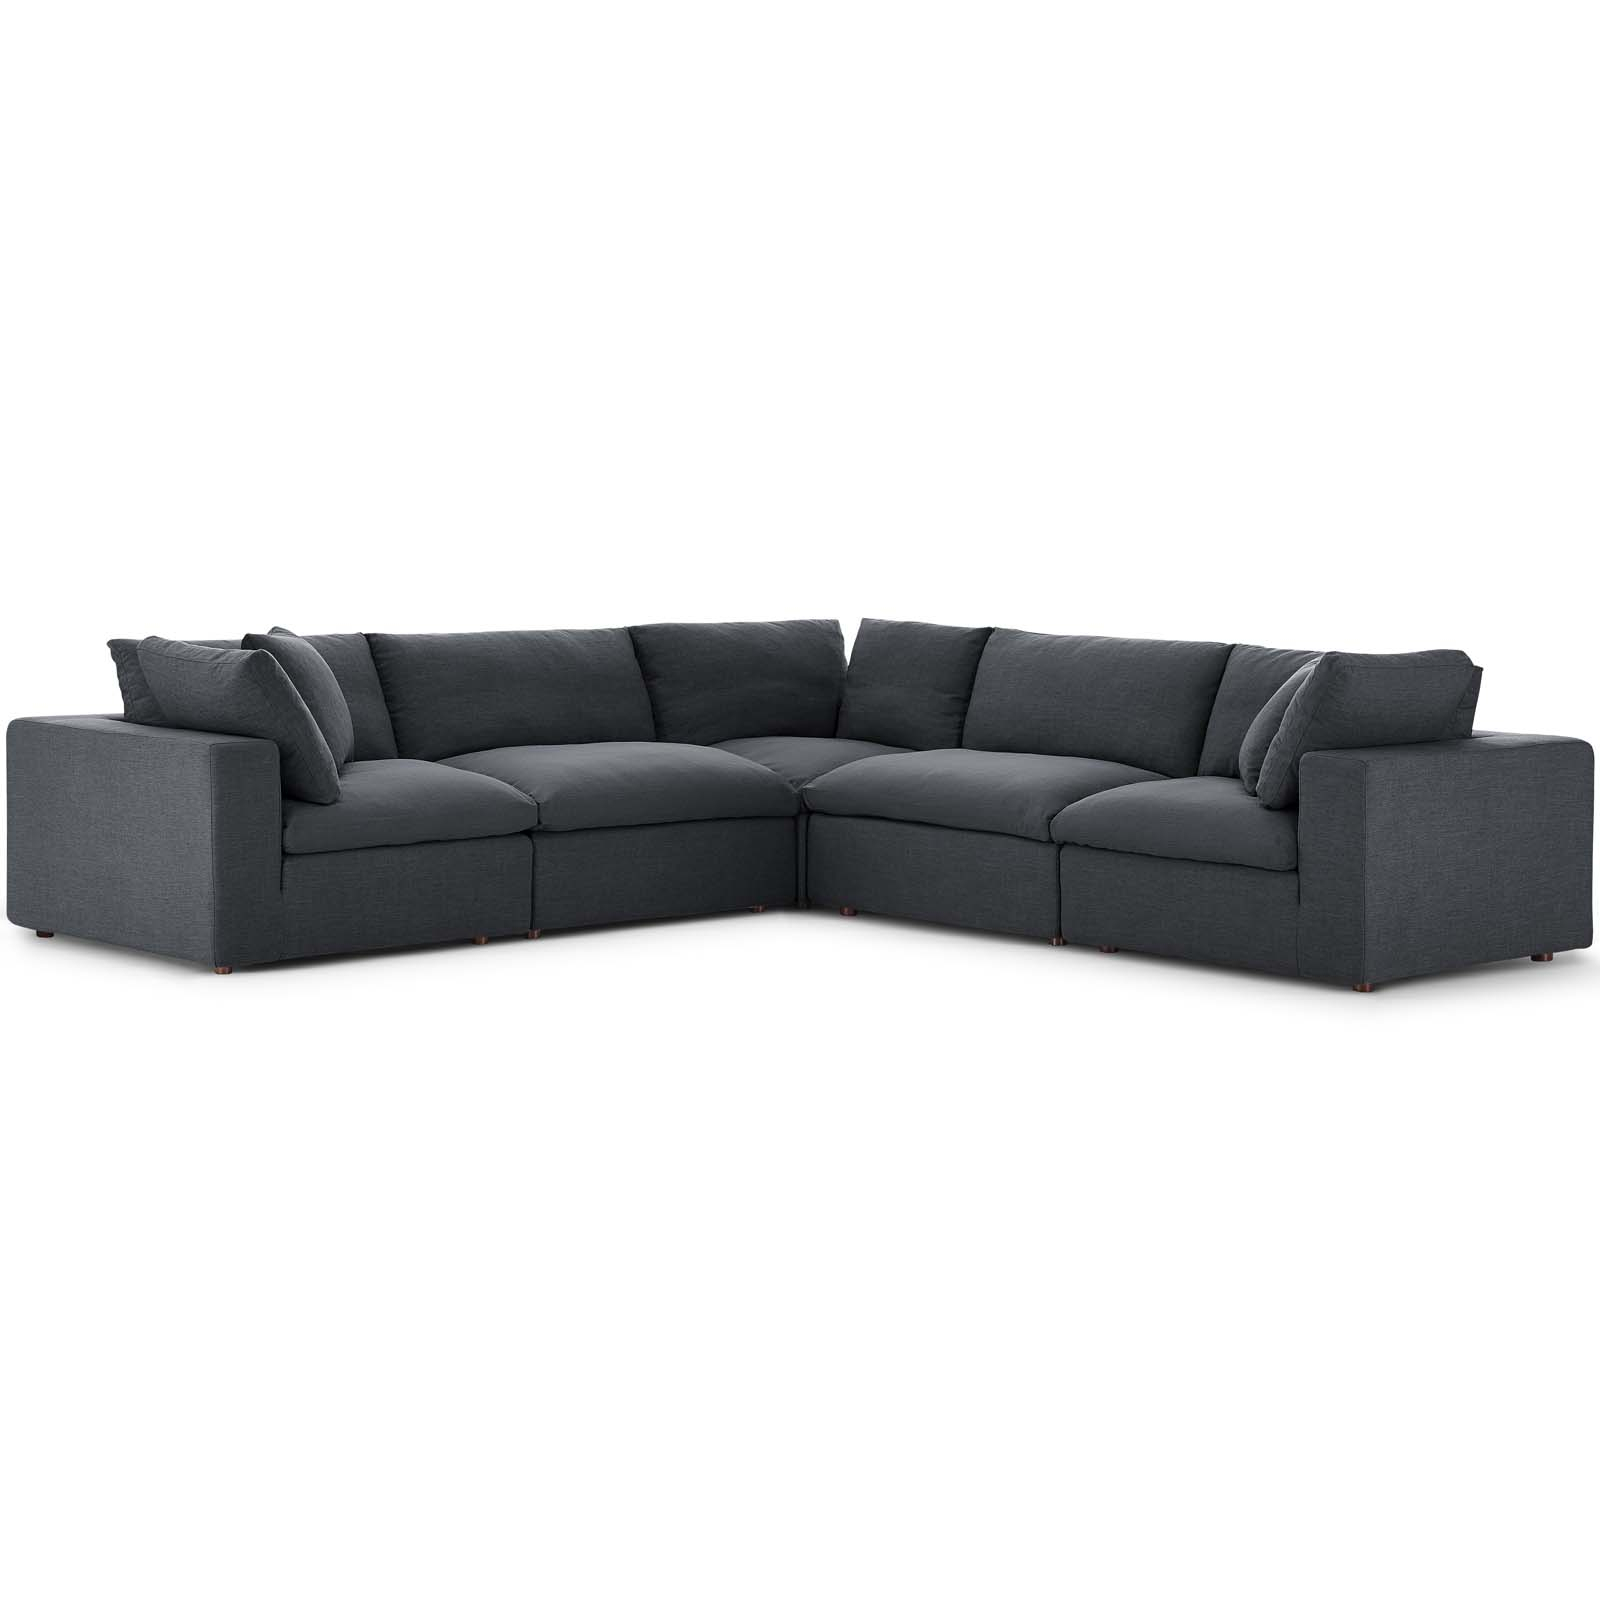 Commix Down Filled Overstuffed 5 Piece Sectional Sofa Set Gray Throughout Down Filled Sectional Sofas (View 7 of 15)